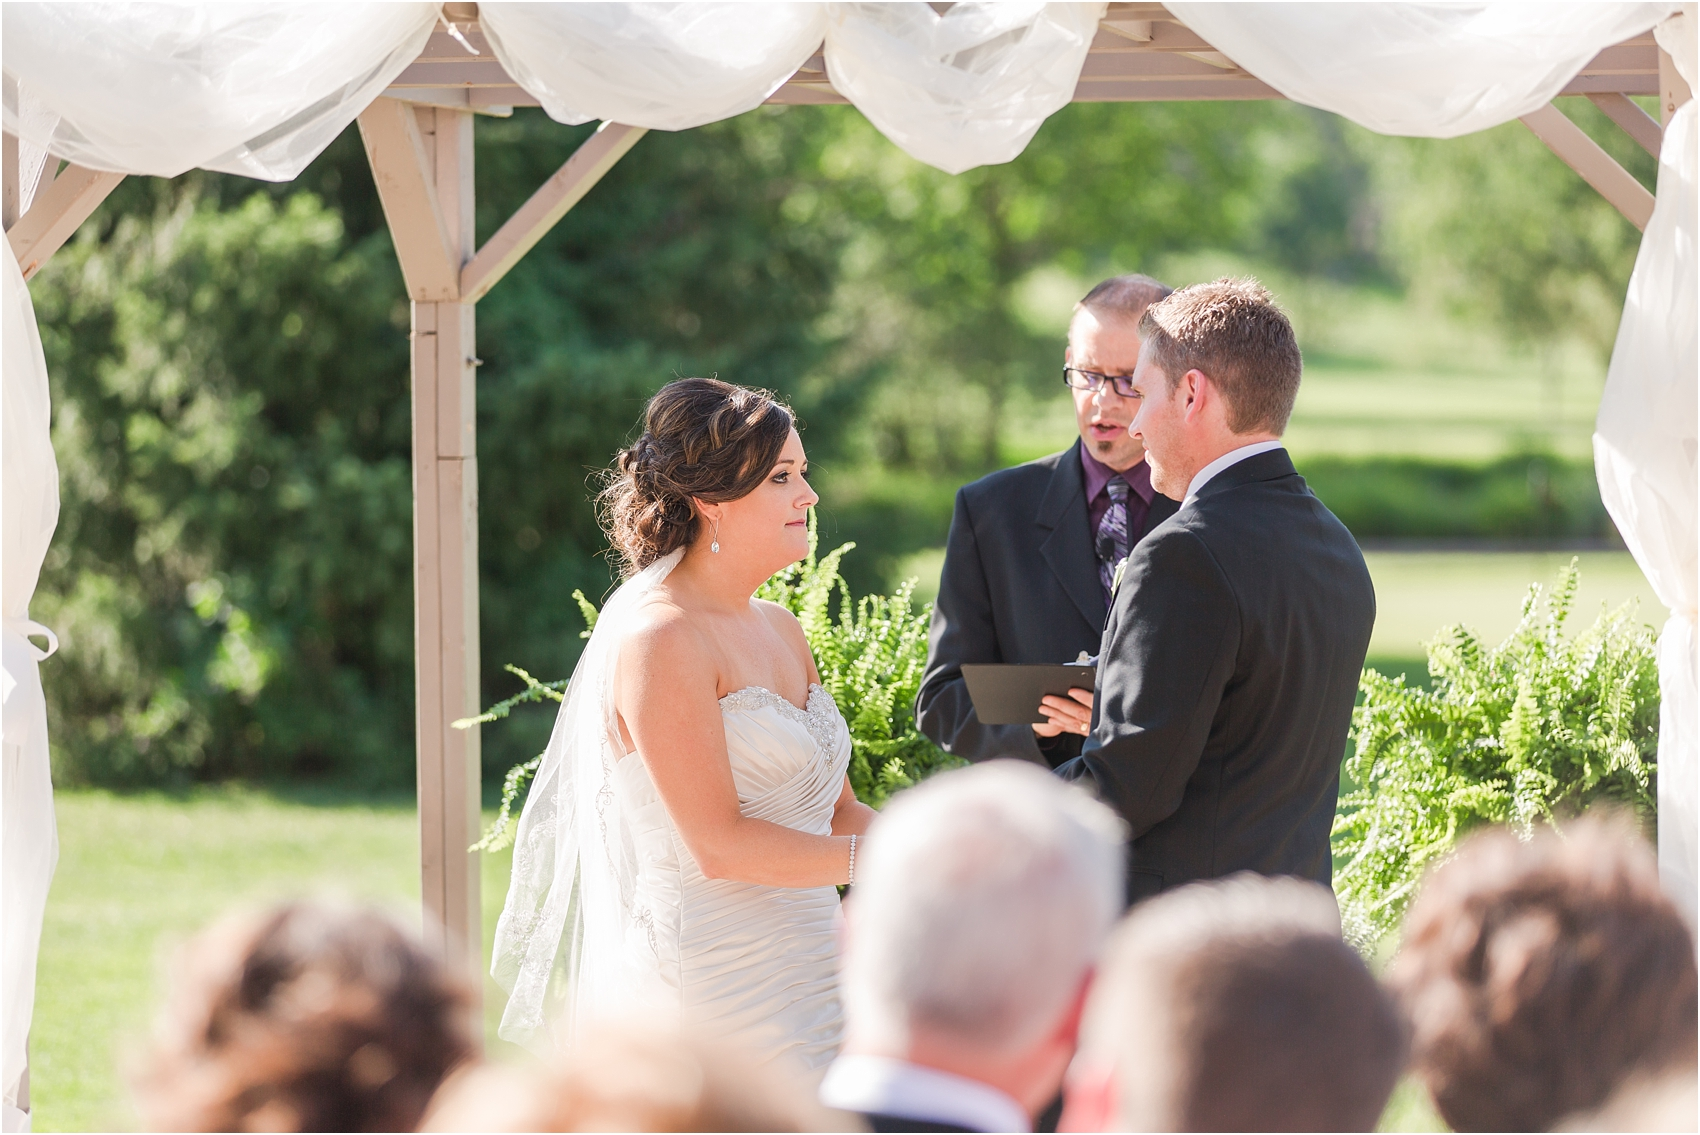 classic-wedding-photos-at-great-oaks-country-club-in-rochester-hills-mi-by-courtney-carolyn-photography_0078.jpg